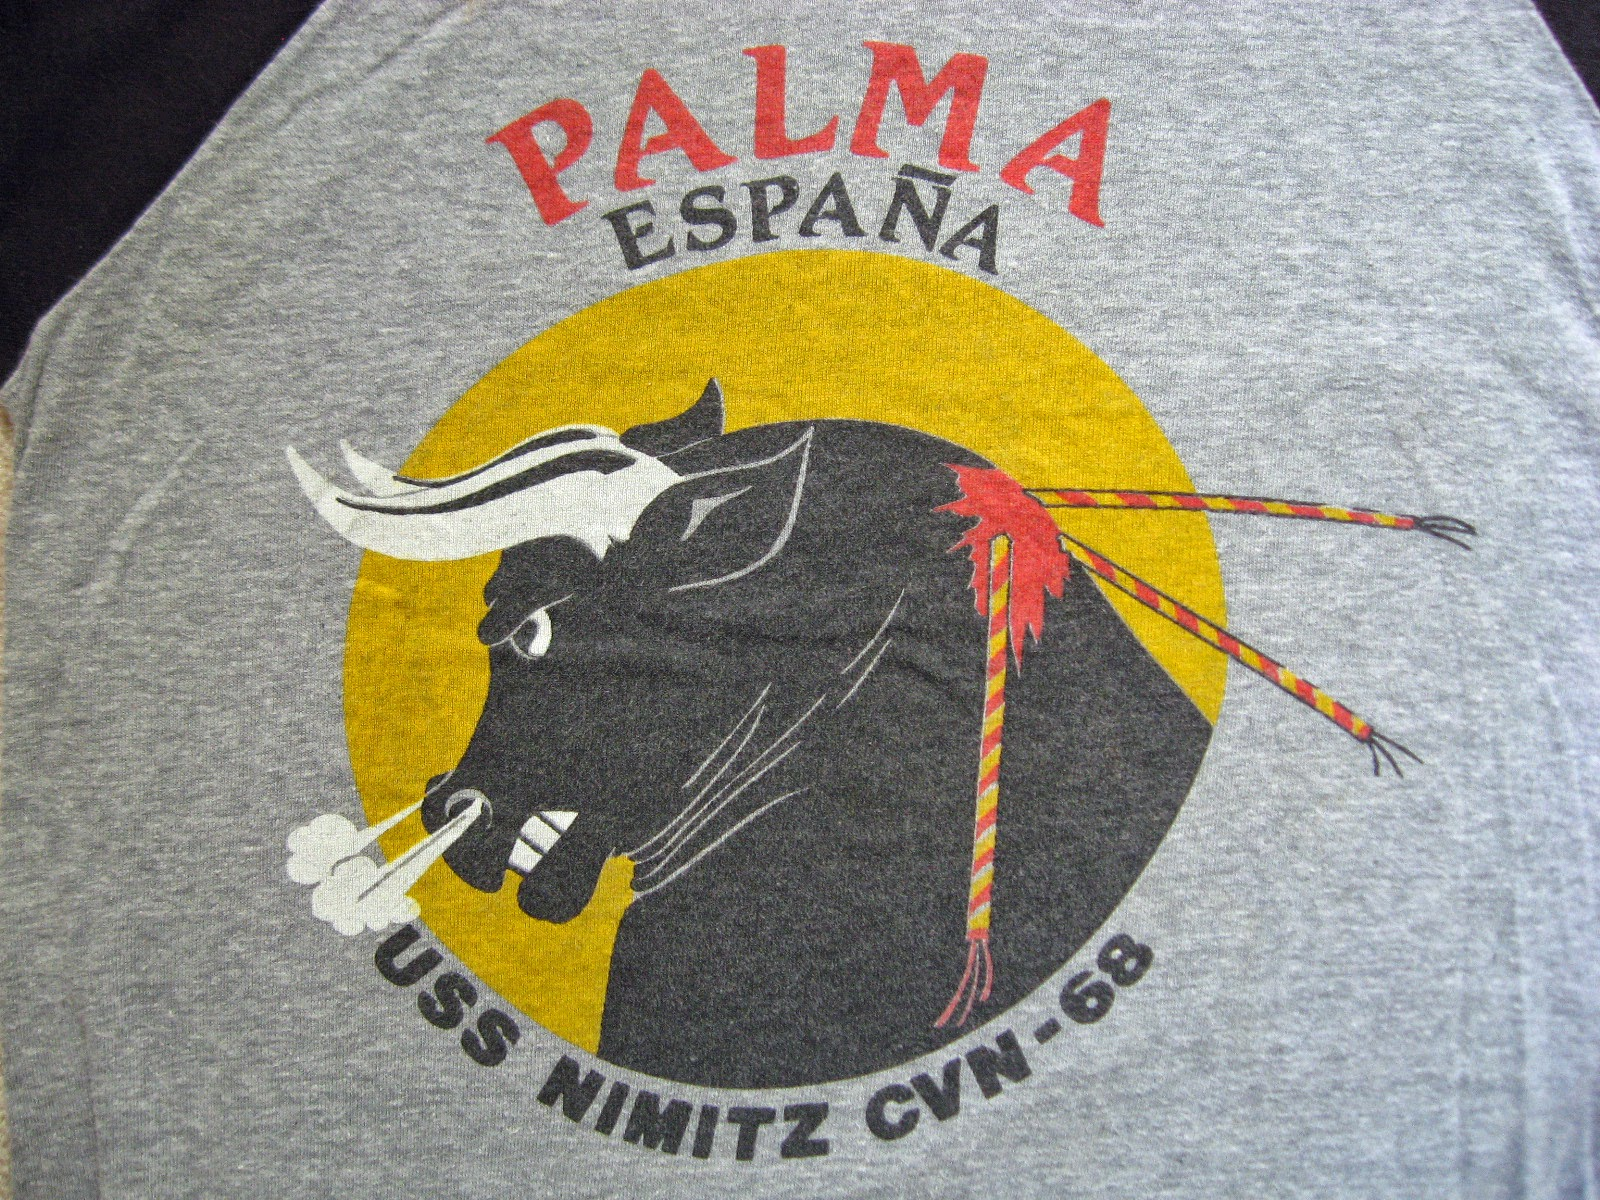 My USS Nimitz Palma Spain shirt from that visit. Still have it!